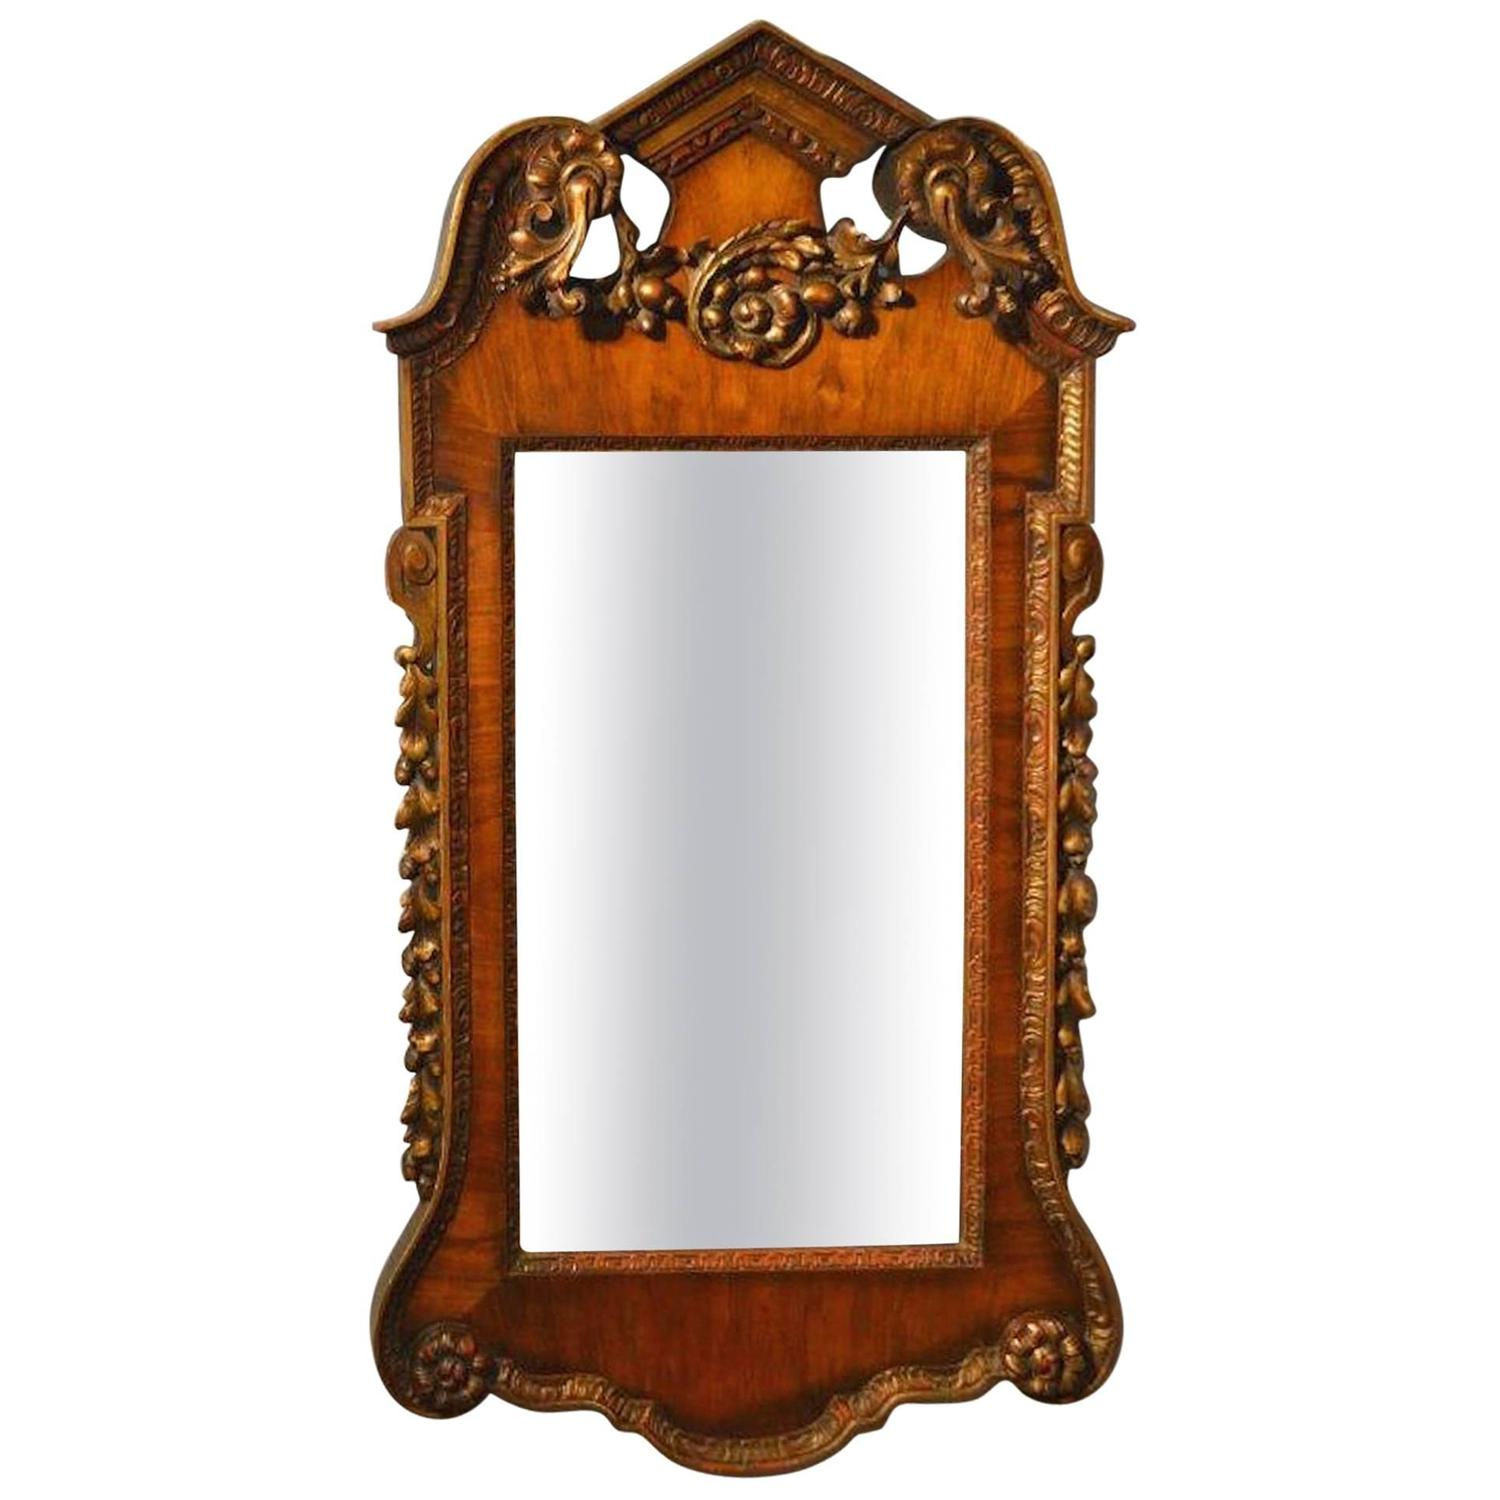 Walnut and parcel gilt george i style antique wall mirror for Antique style wall mirror